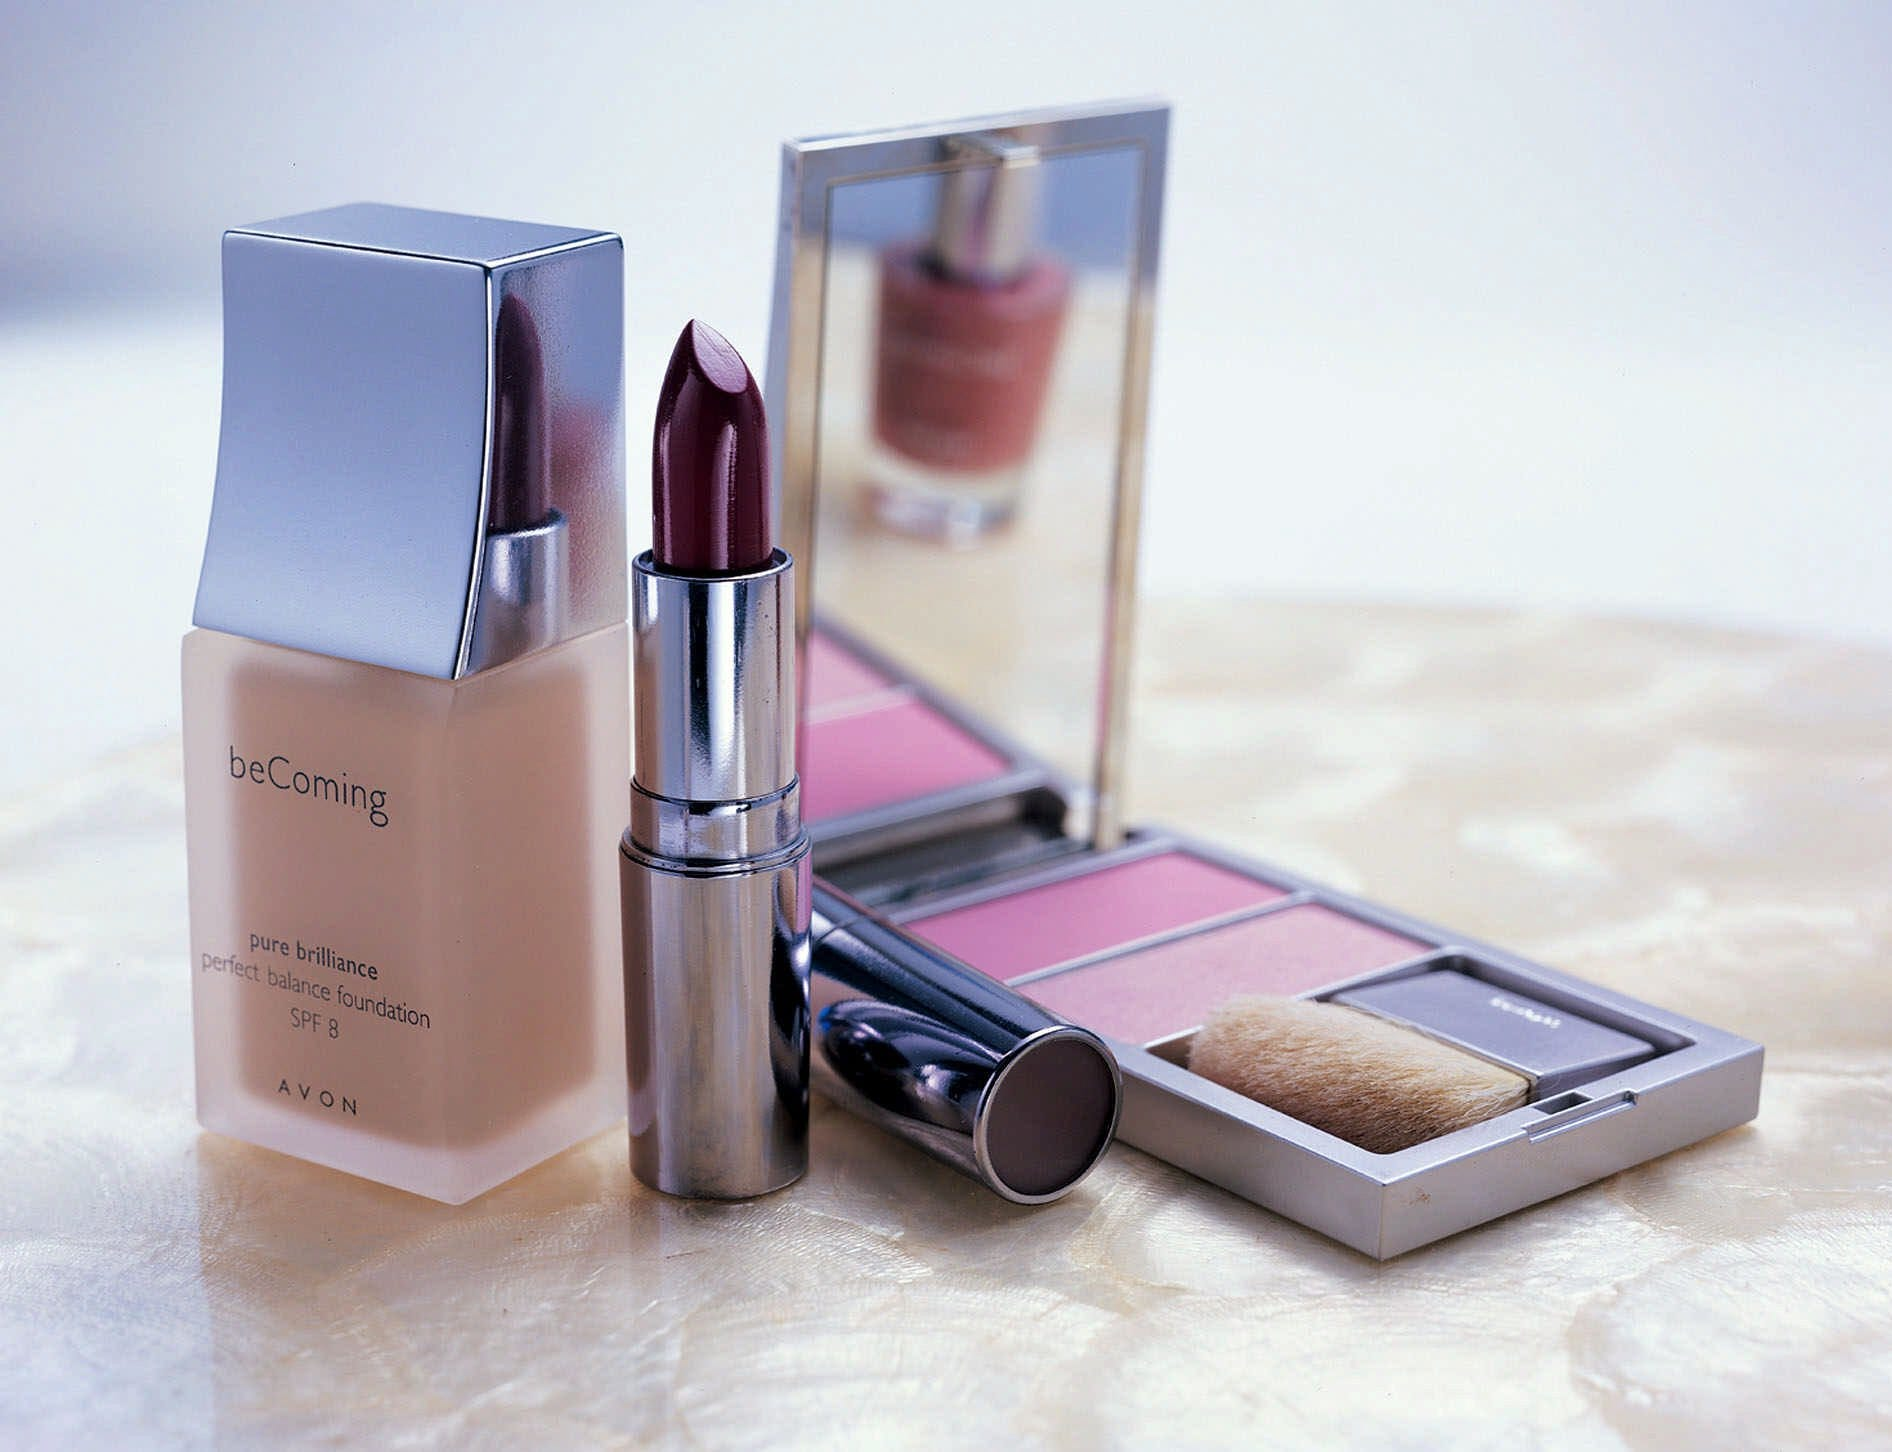 Avon Products moving to the U.K., shedding 2,500 jobs